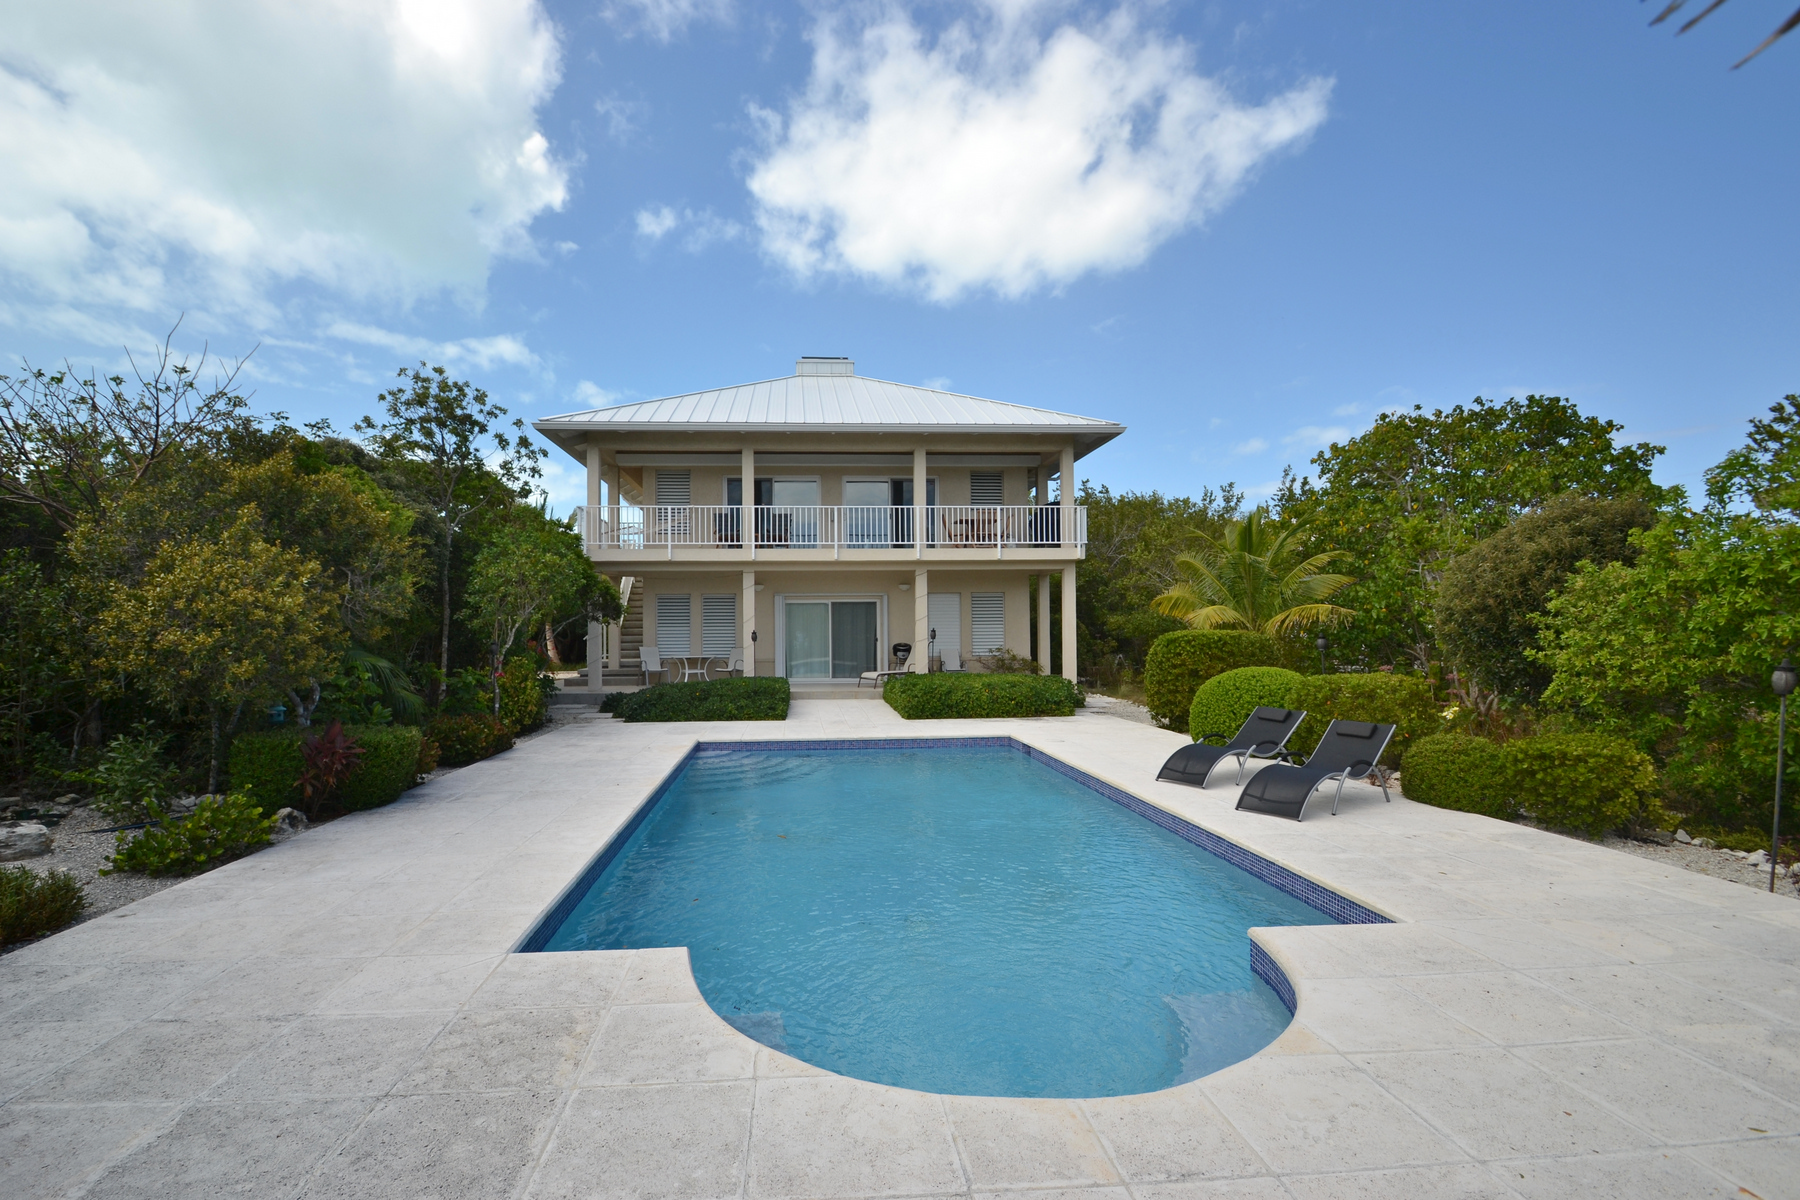 Single Family Home for Sale at 2 EGRET CLOSE Thompson Cove, Providenciales Turks And Caicos Islands